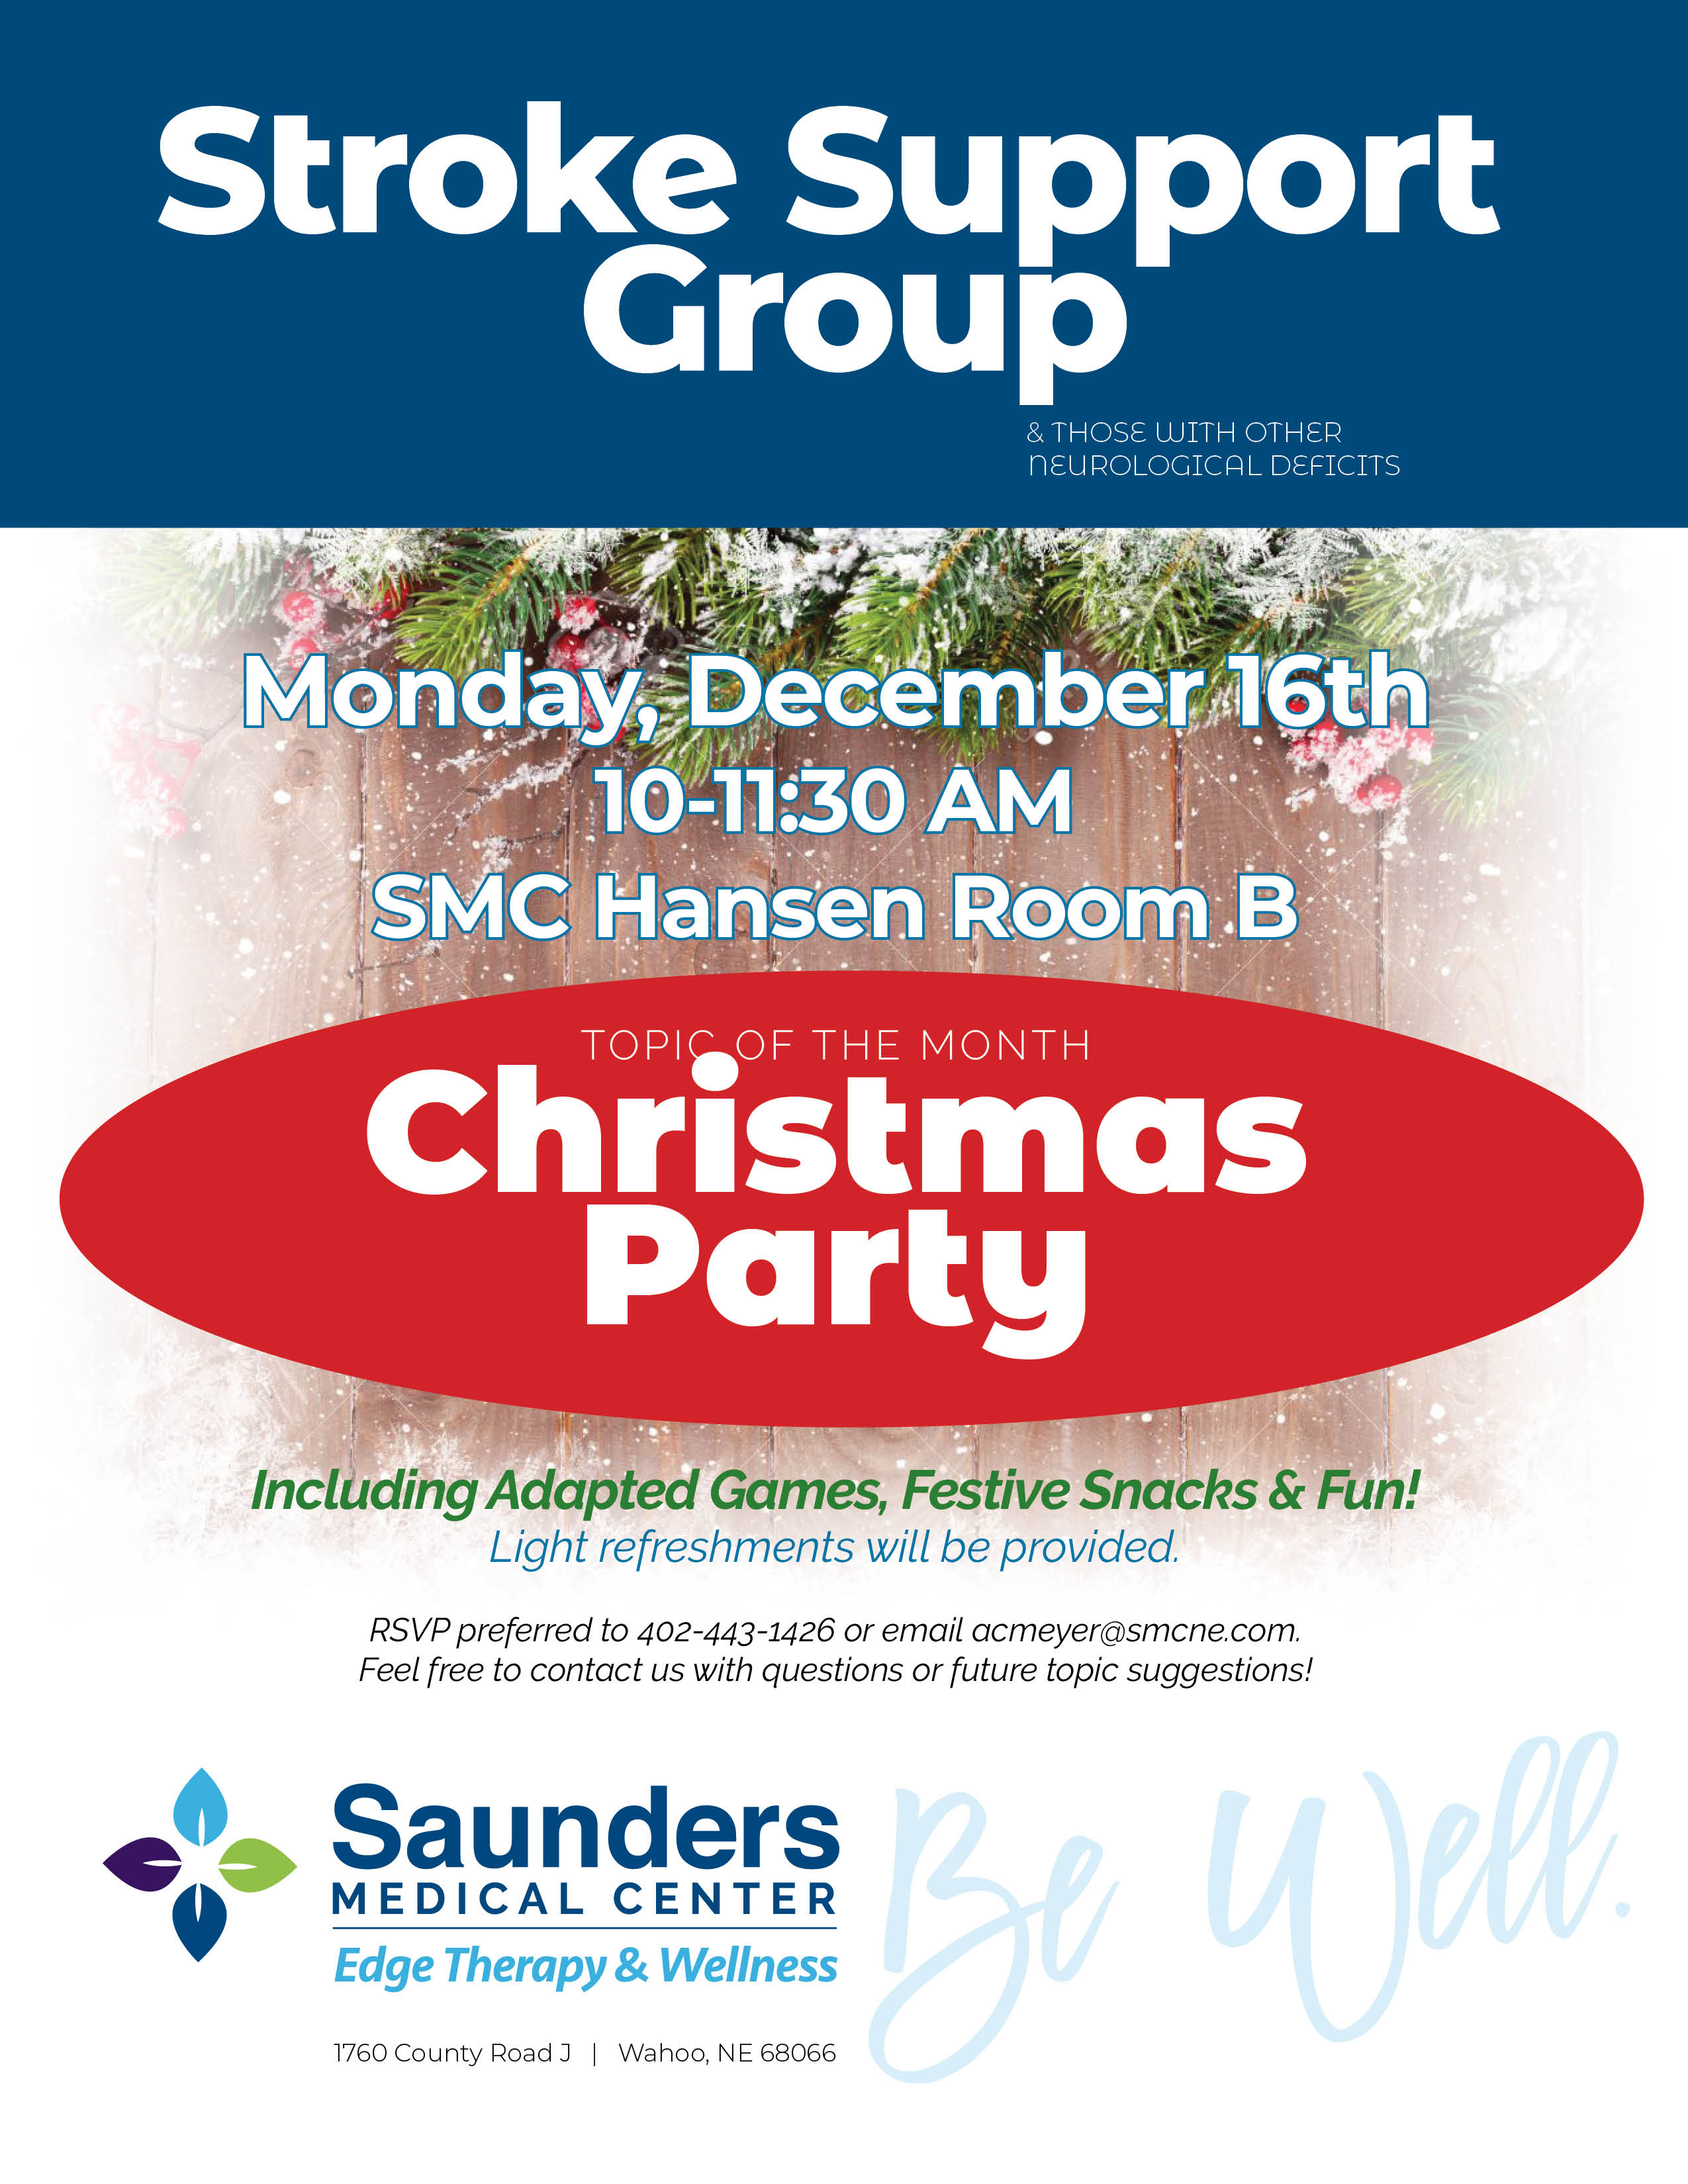 Stroke Support Group | Christmas Party with Festive Snacks and Adaptive Games!